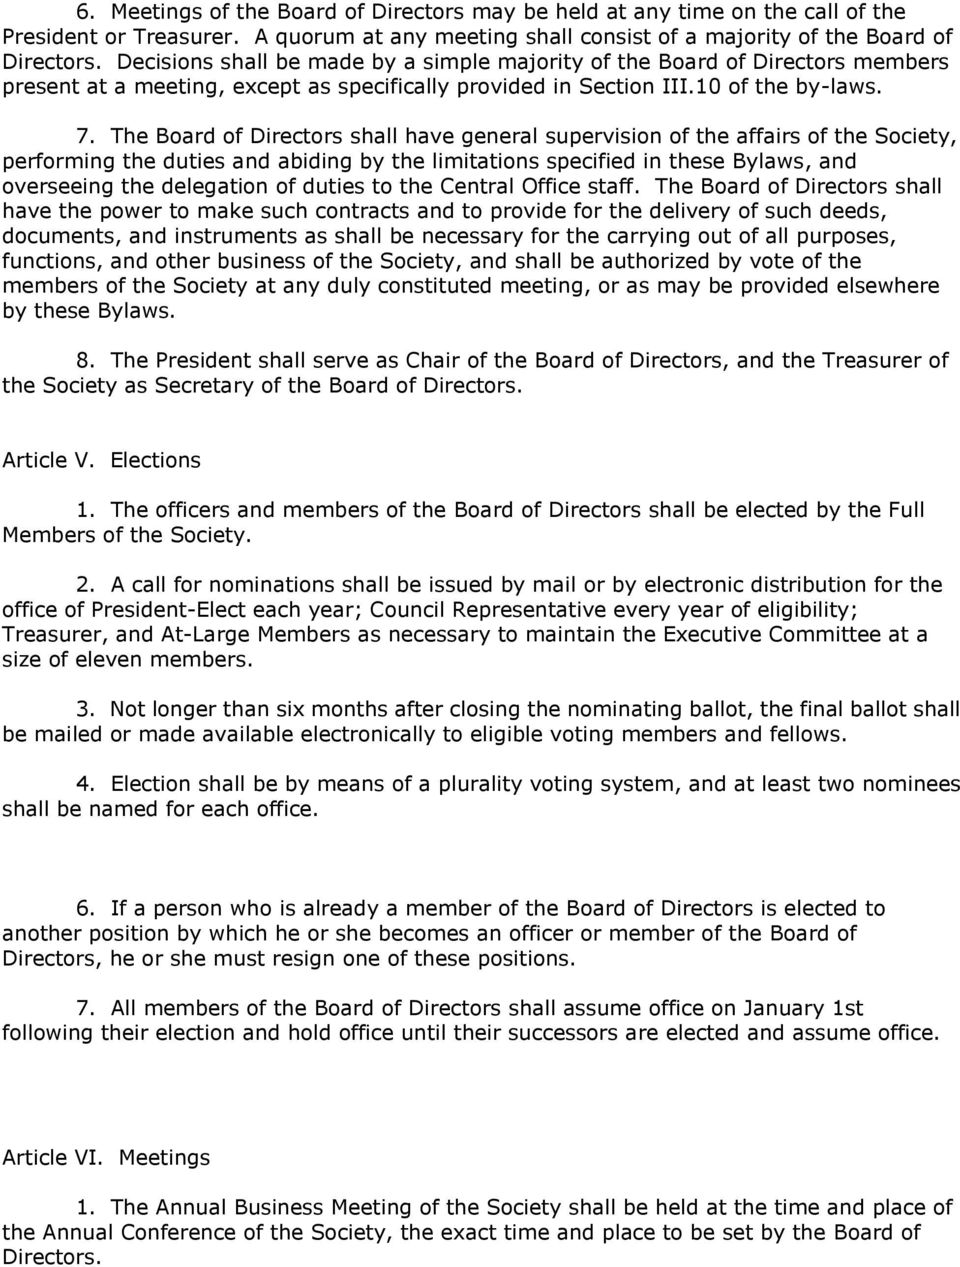 The Board of Directors shall have general supervision of the affairs of the Society, performing the duties and abiding by the limitations specified in these Bylaws, and overseeing the delegation of